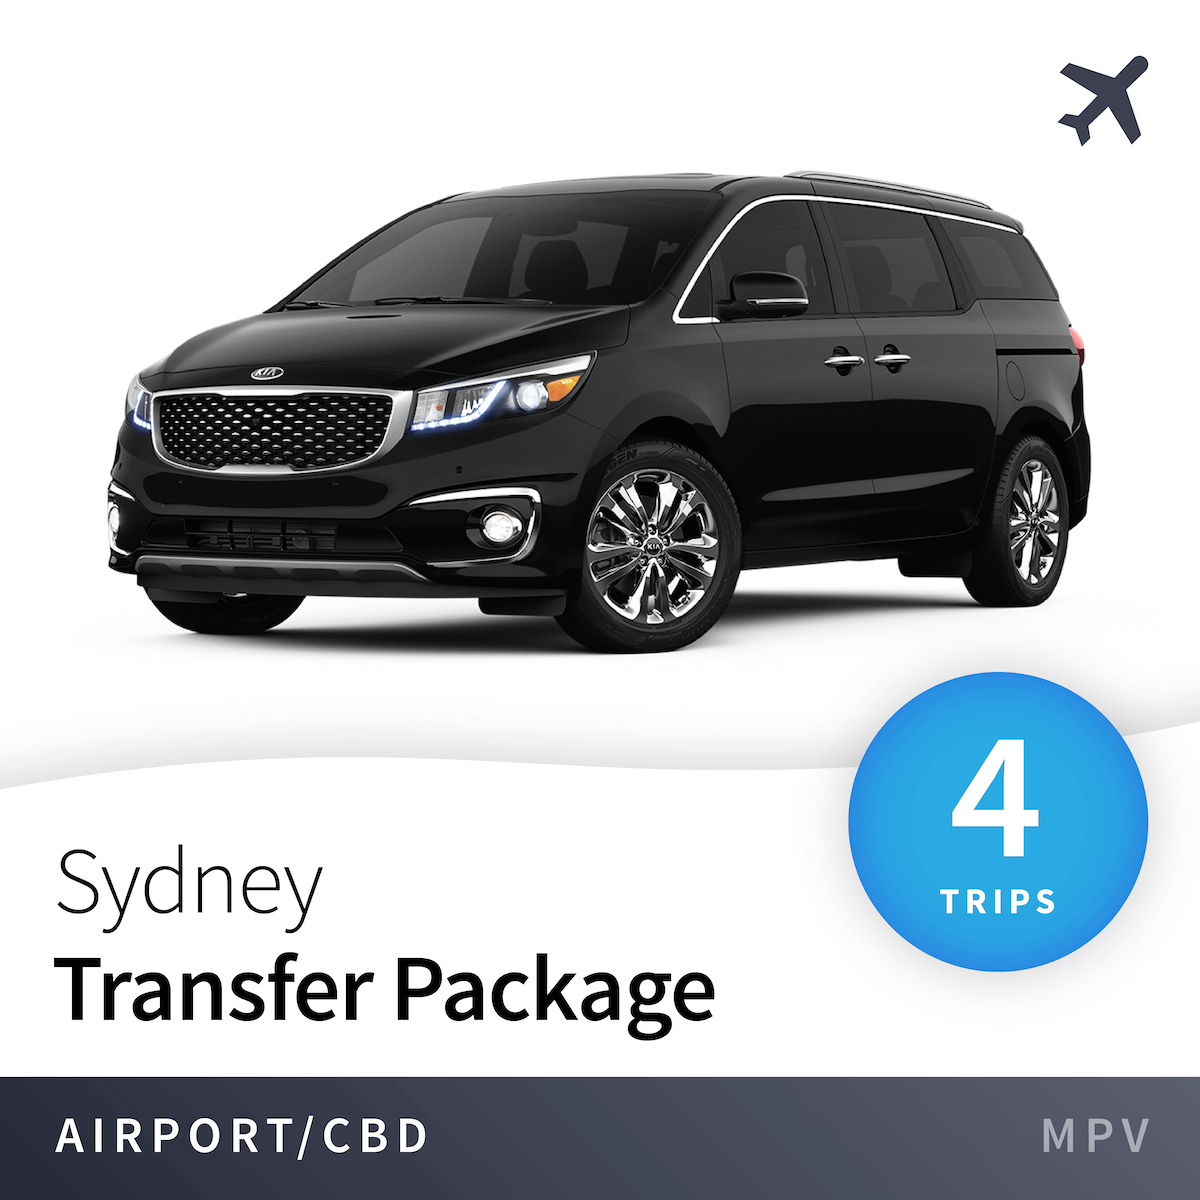 Sydney Airport Transfer Package - MPV (4 Trips) 4